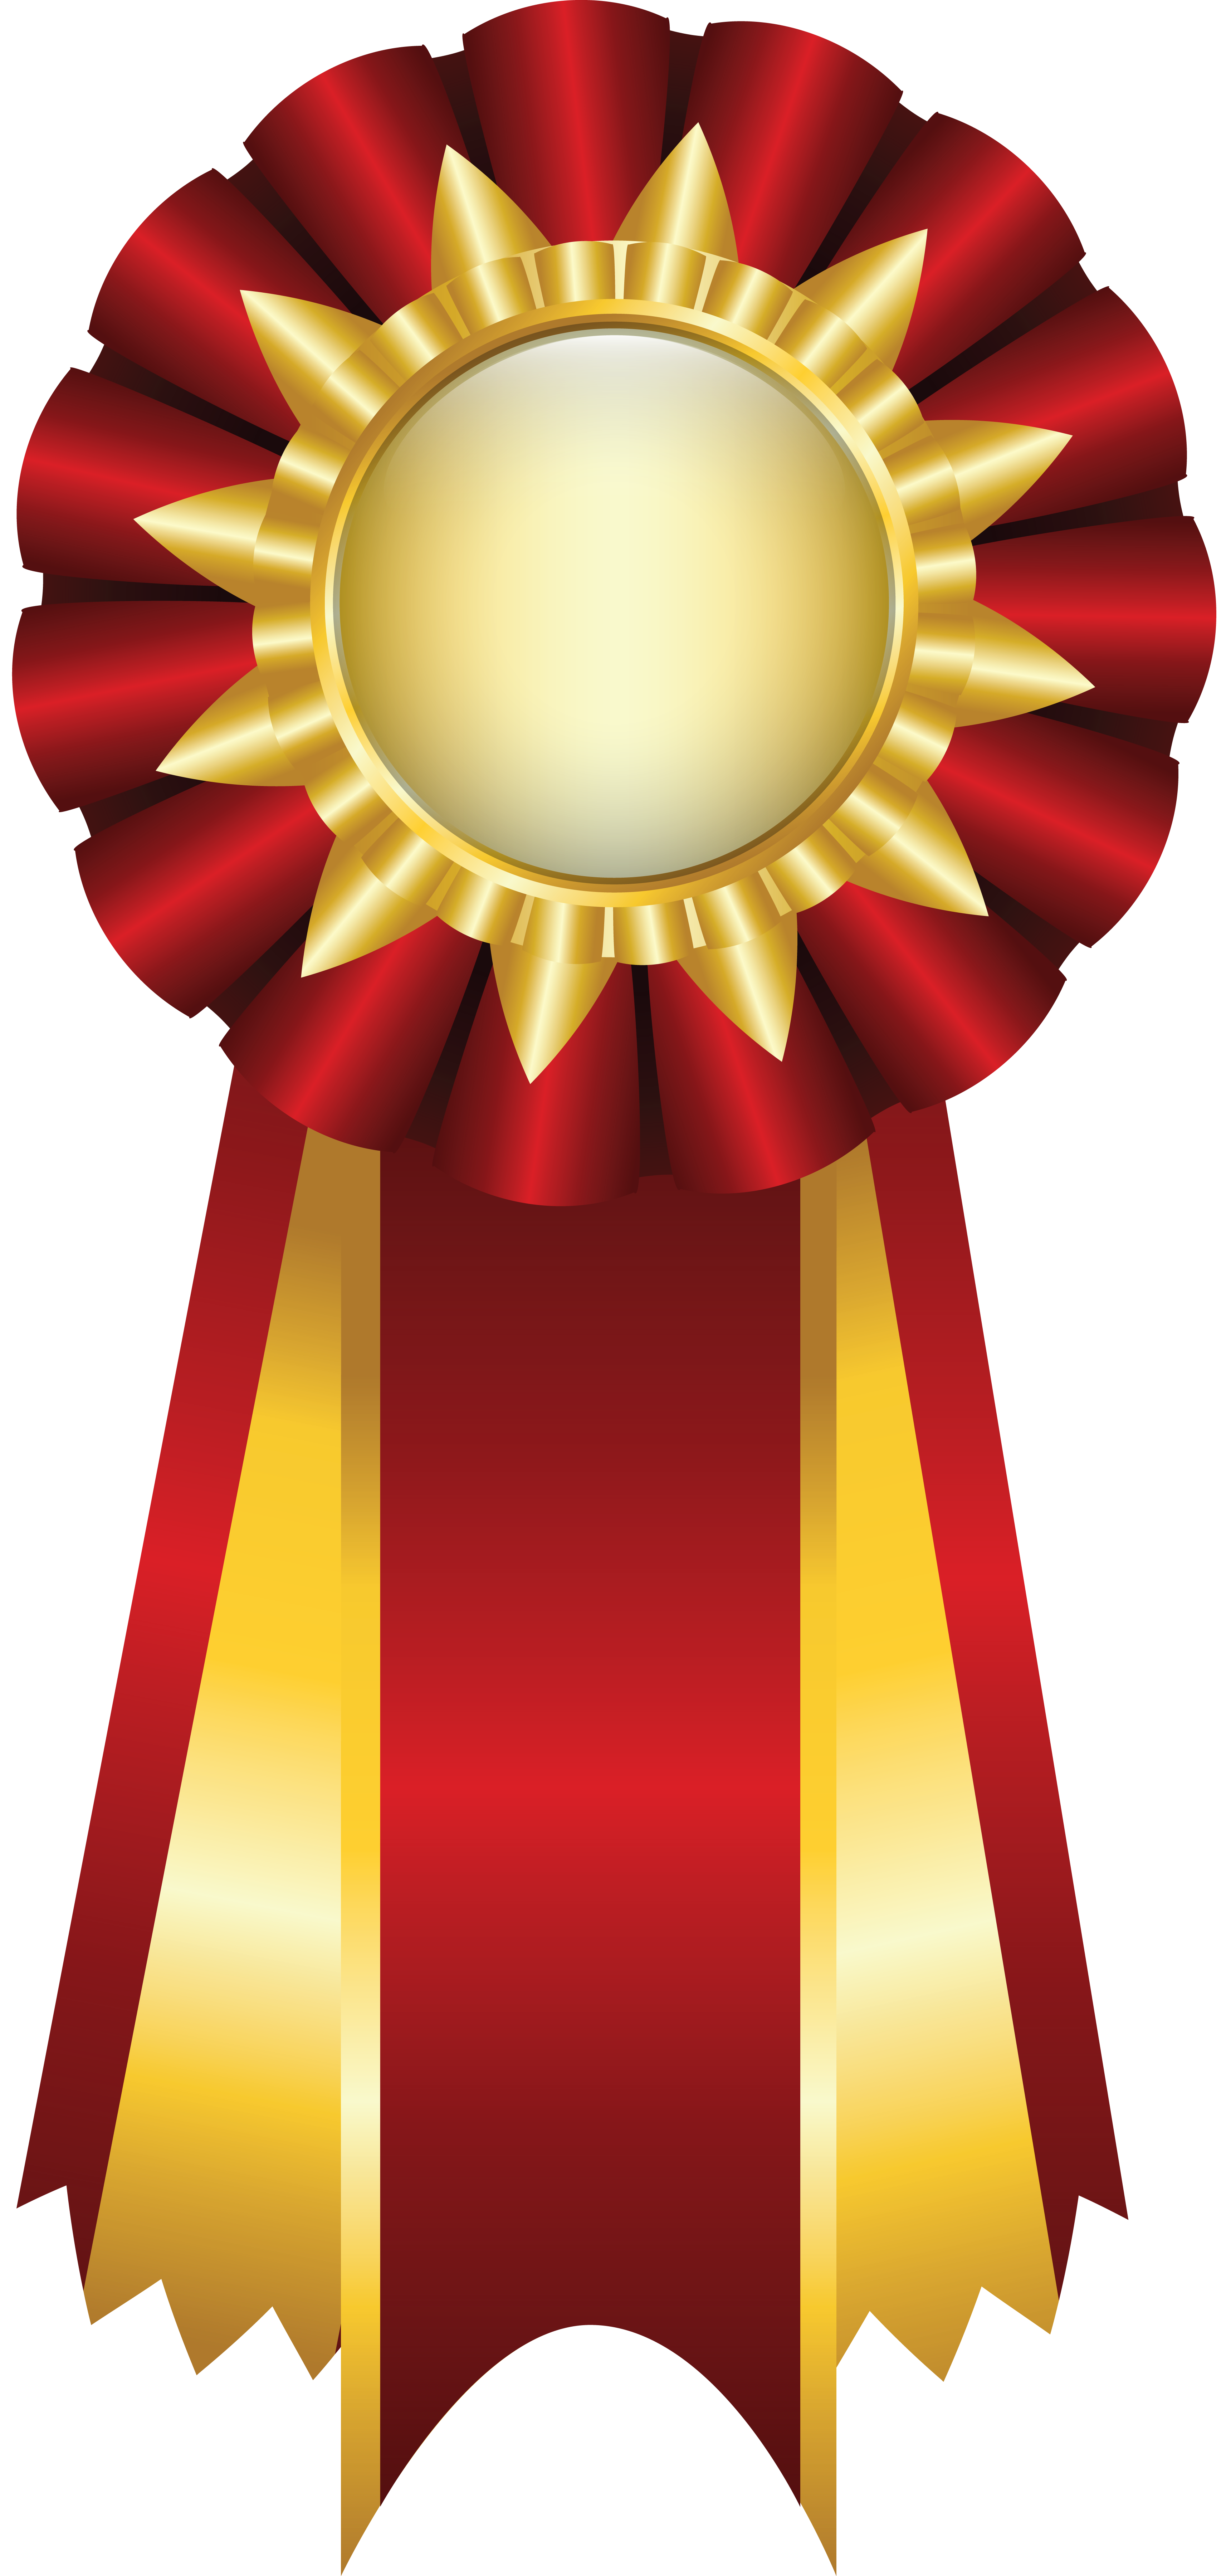 Library clipart place. Gold medal png image